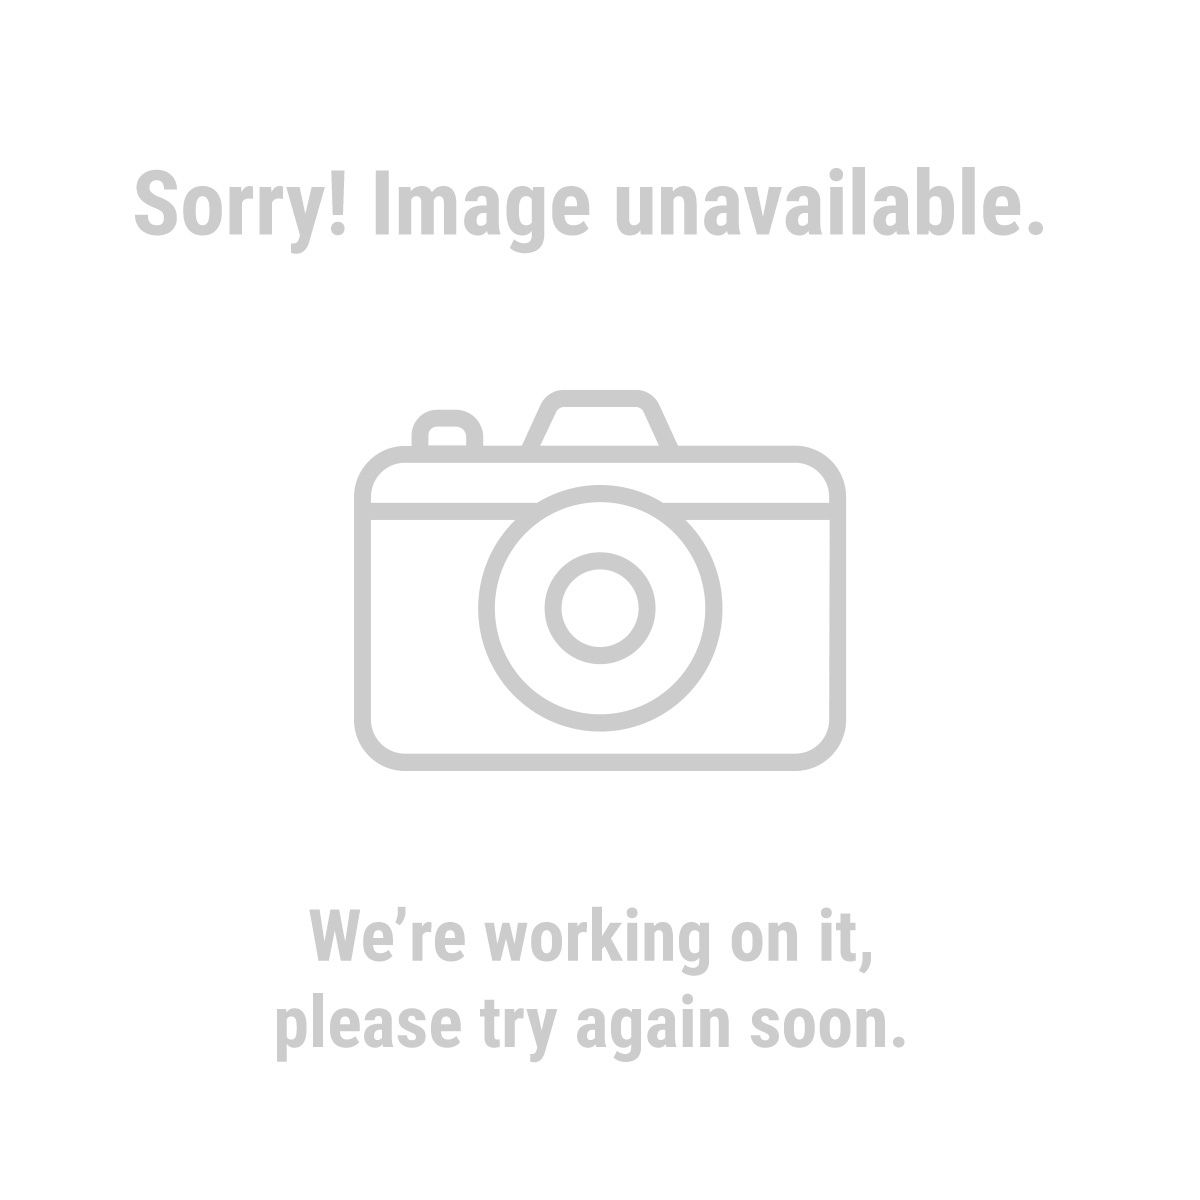 image_24032 3 gallon air compressor 1 3 hp, 100 psi, oilless  at webbmarketing.co